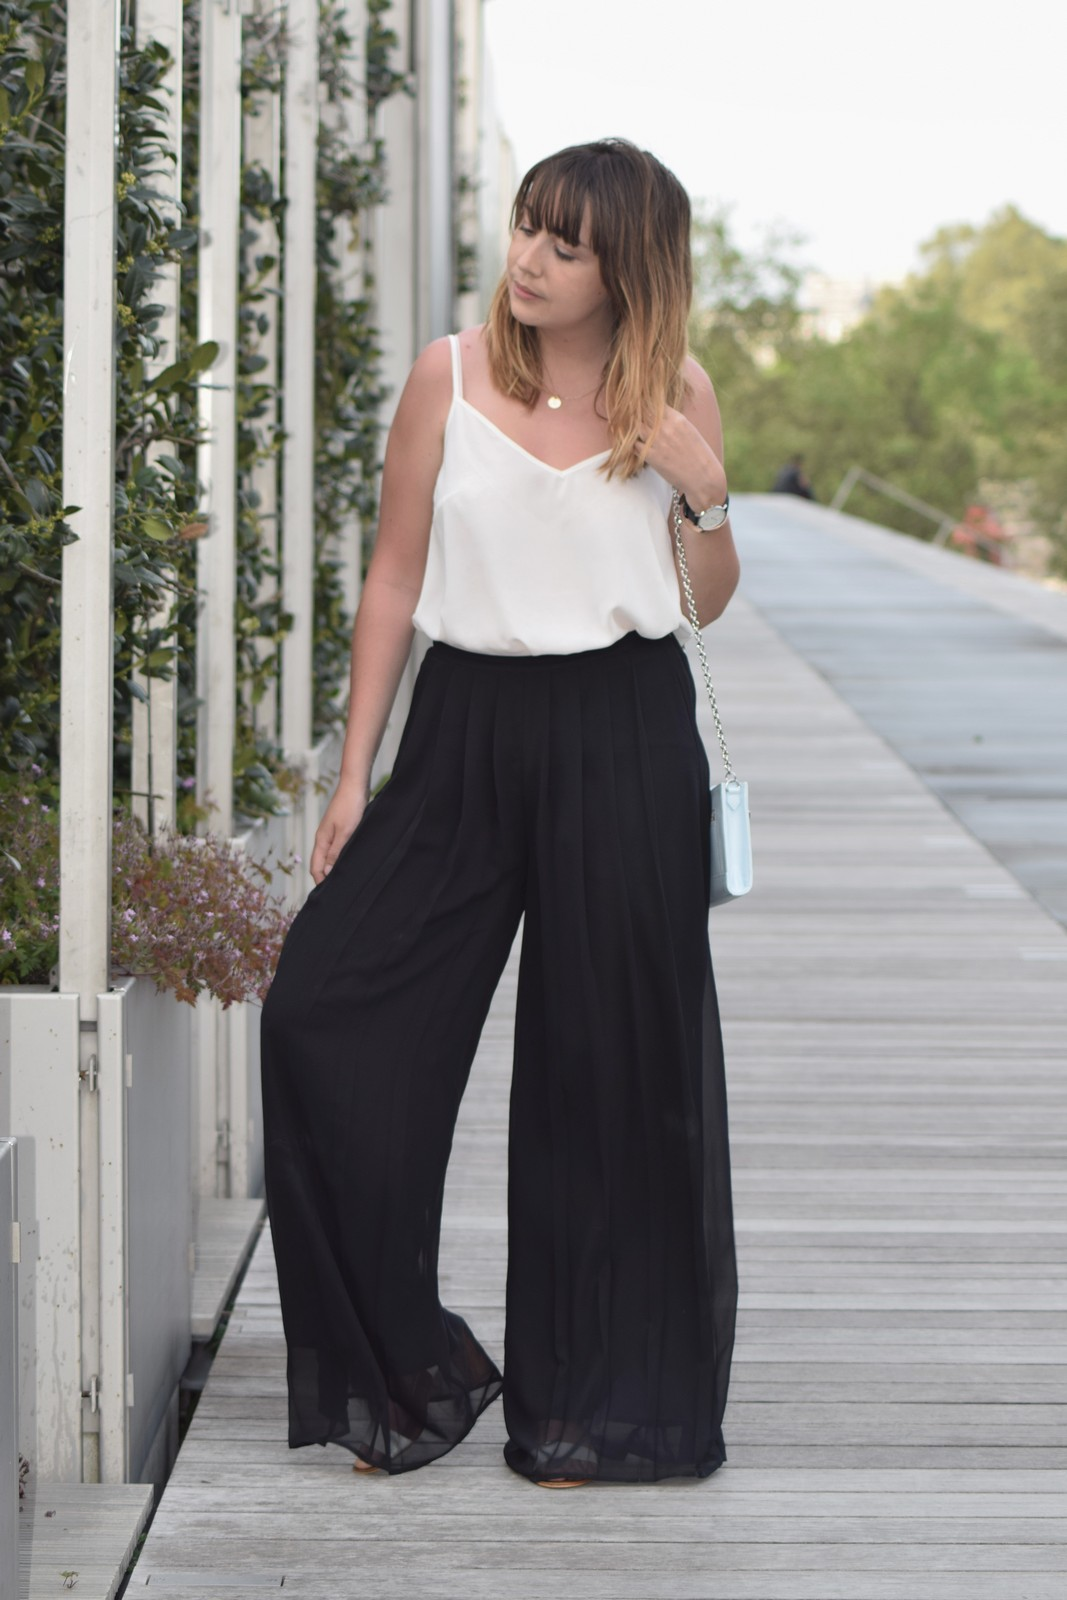 Blog mode femme Paris - Du style, Madame - black and white outfit